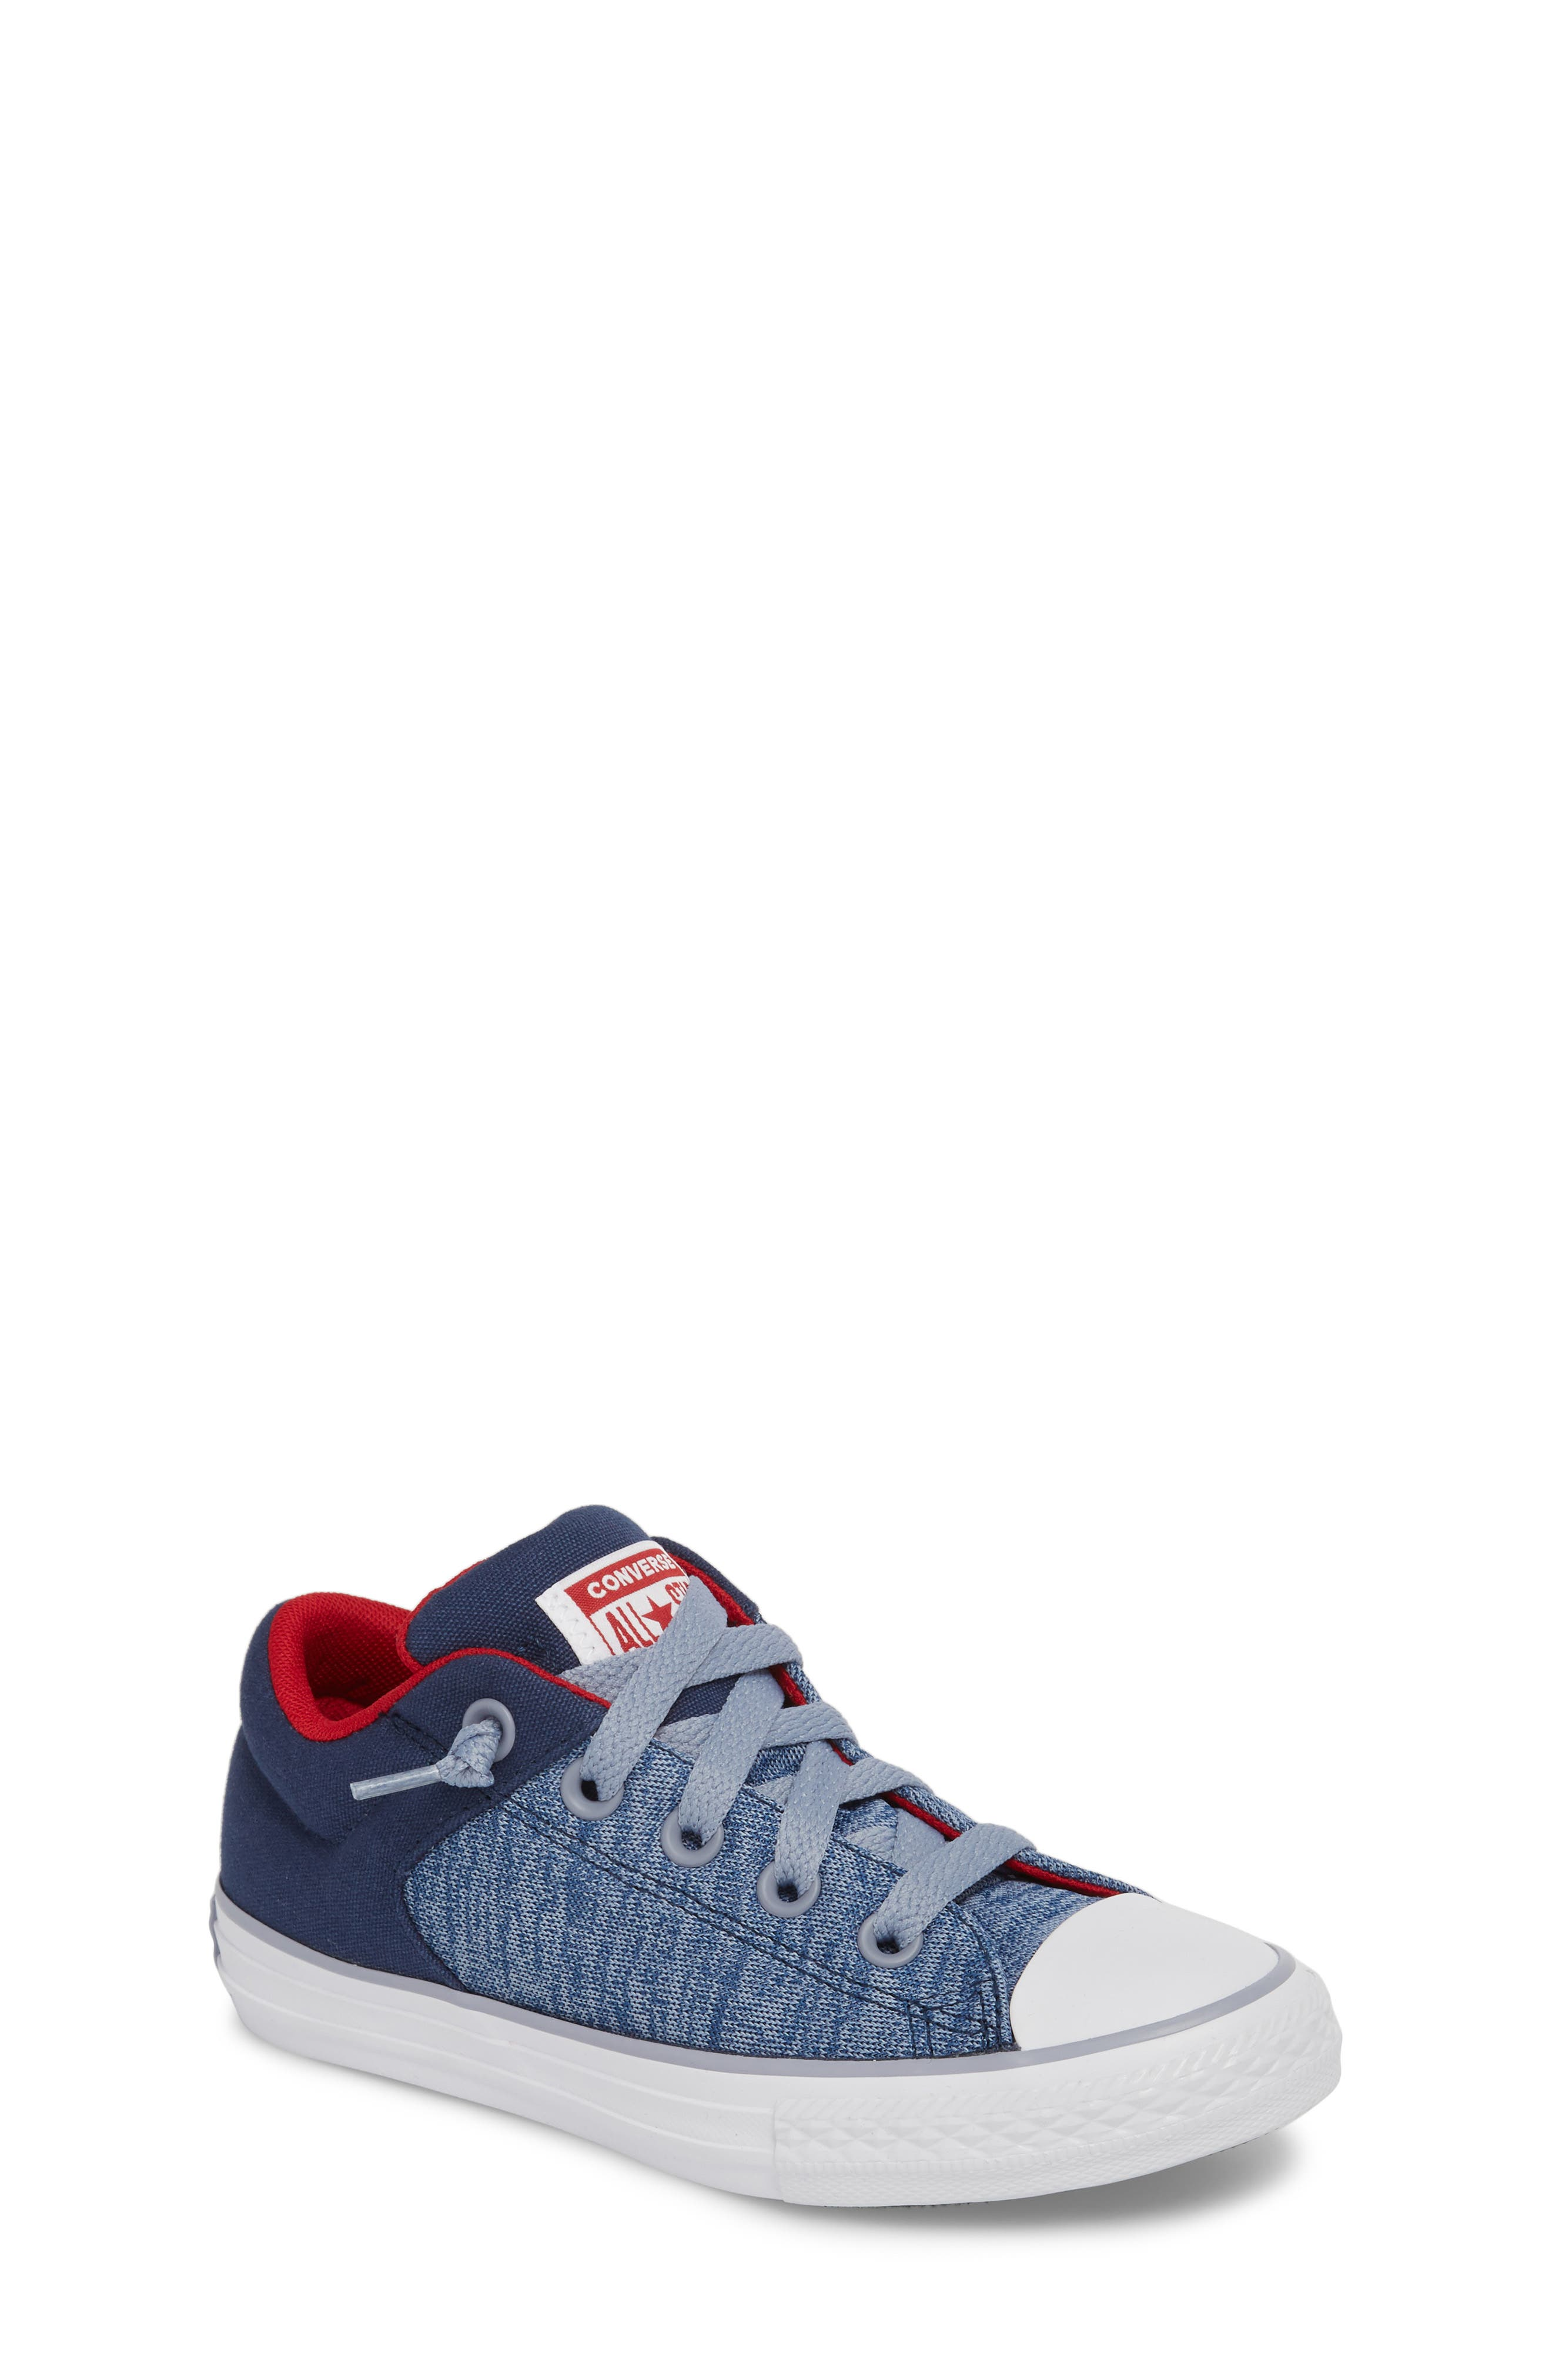 One Star Heather Street Sneaker,                             Main thumbnail 1, color,                             Navy